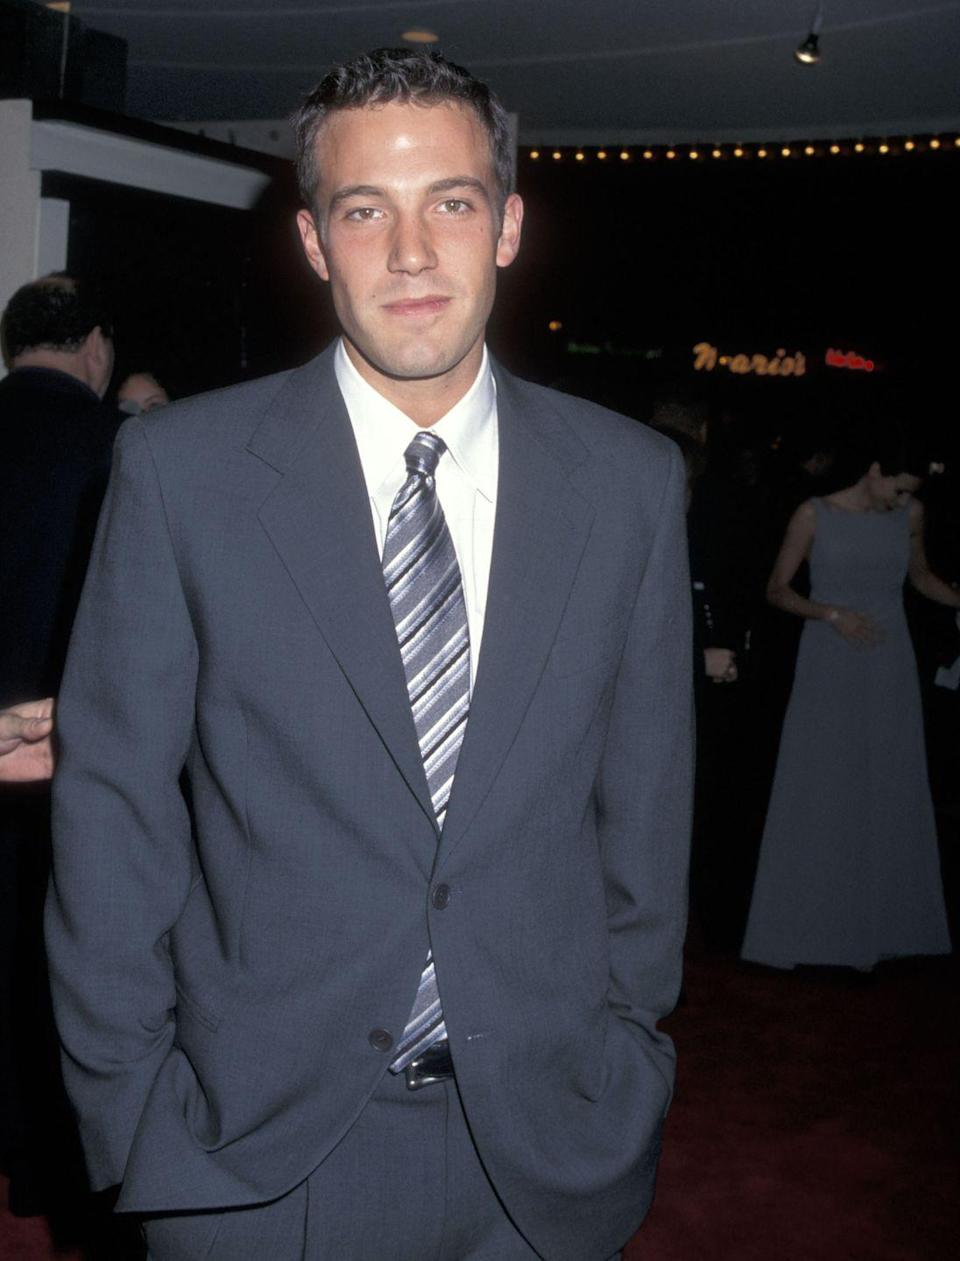 <p>Ben Affleck decided to take his career into his own hands when he co-wrote and starred in his first major film <em>Good Will Hunting </em>with Matt Damon. Here he is at the big premiere.</p>